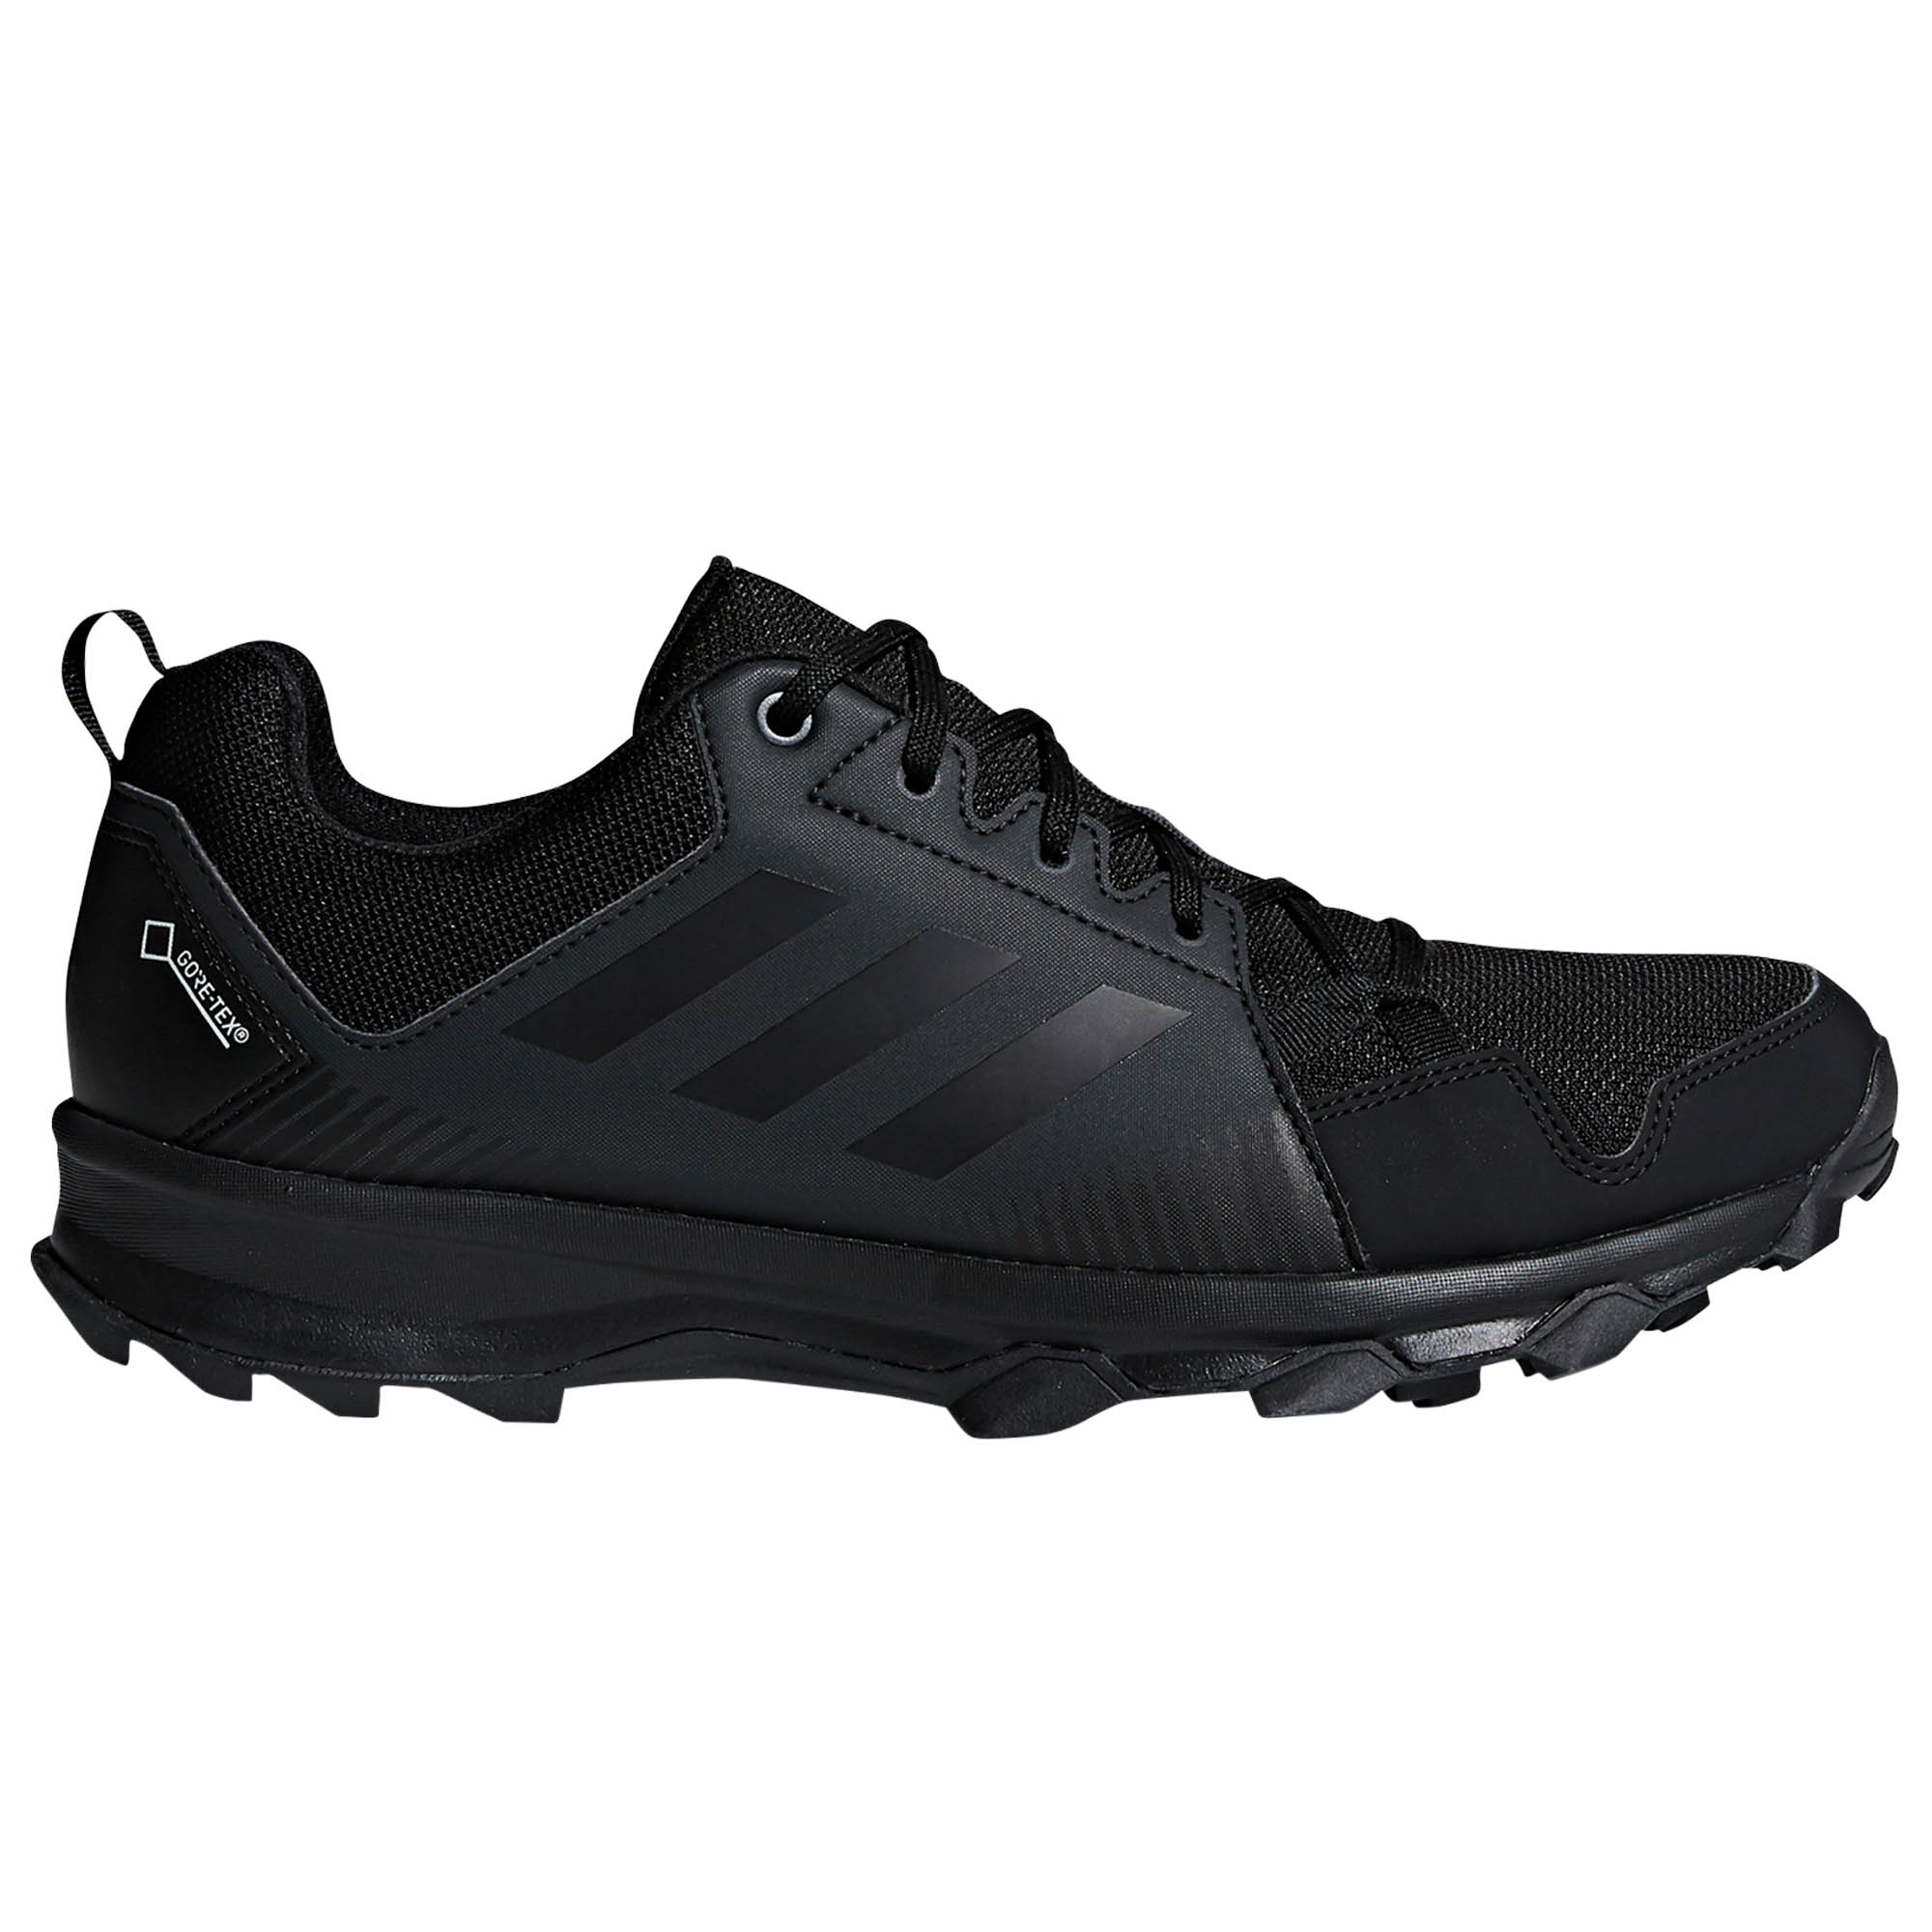 adidas Men Outdoor Trekking Hiking Shoes Terrex Tracerocker GTX Black 46.  About this product. Picture 1 of 2  Picture 2 of 2 a52d295f4